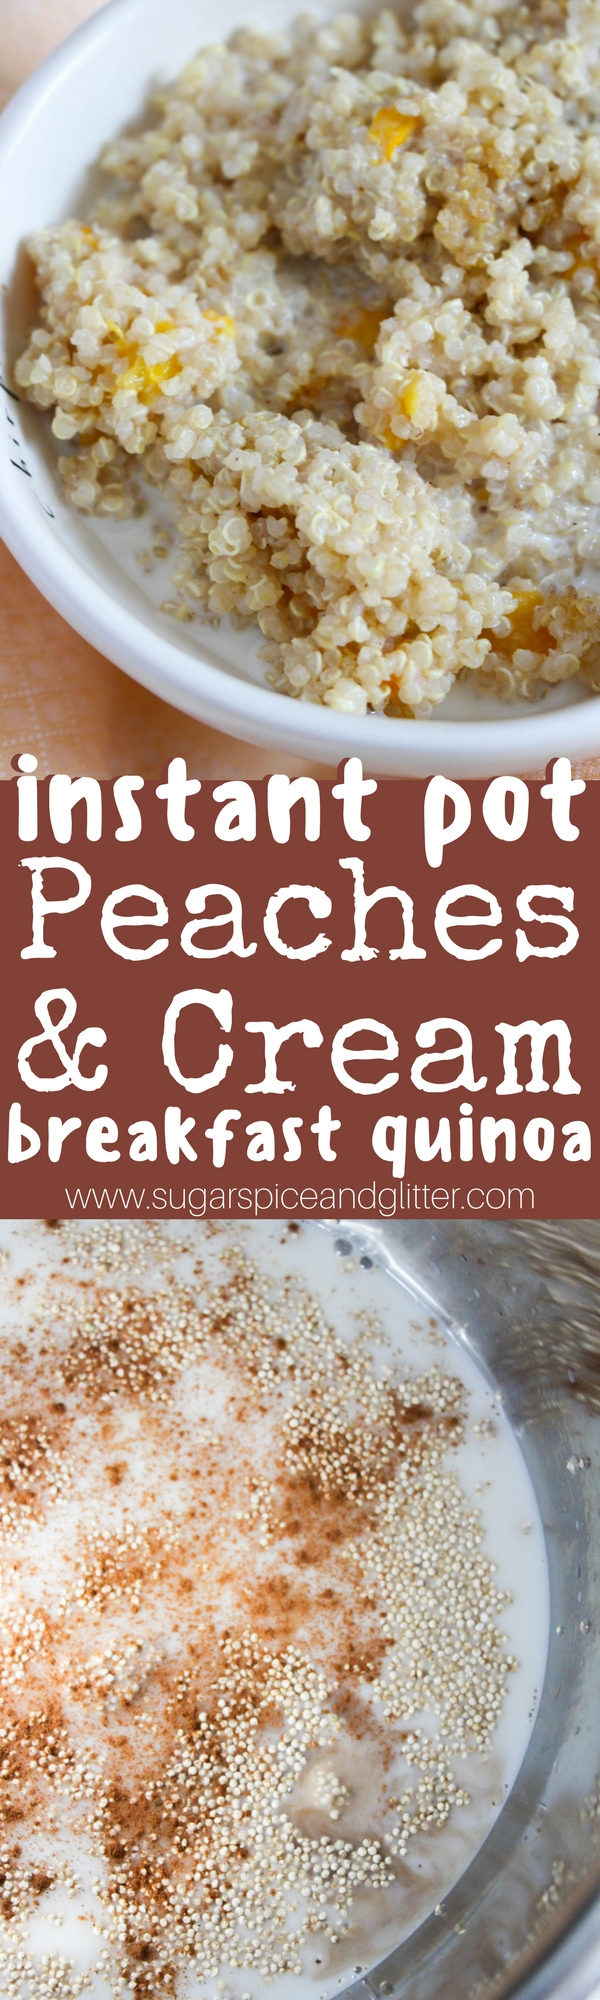 How to make breakfast quinoa in the instant pot - a super simple recipe to start your day on the right track